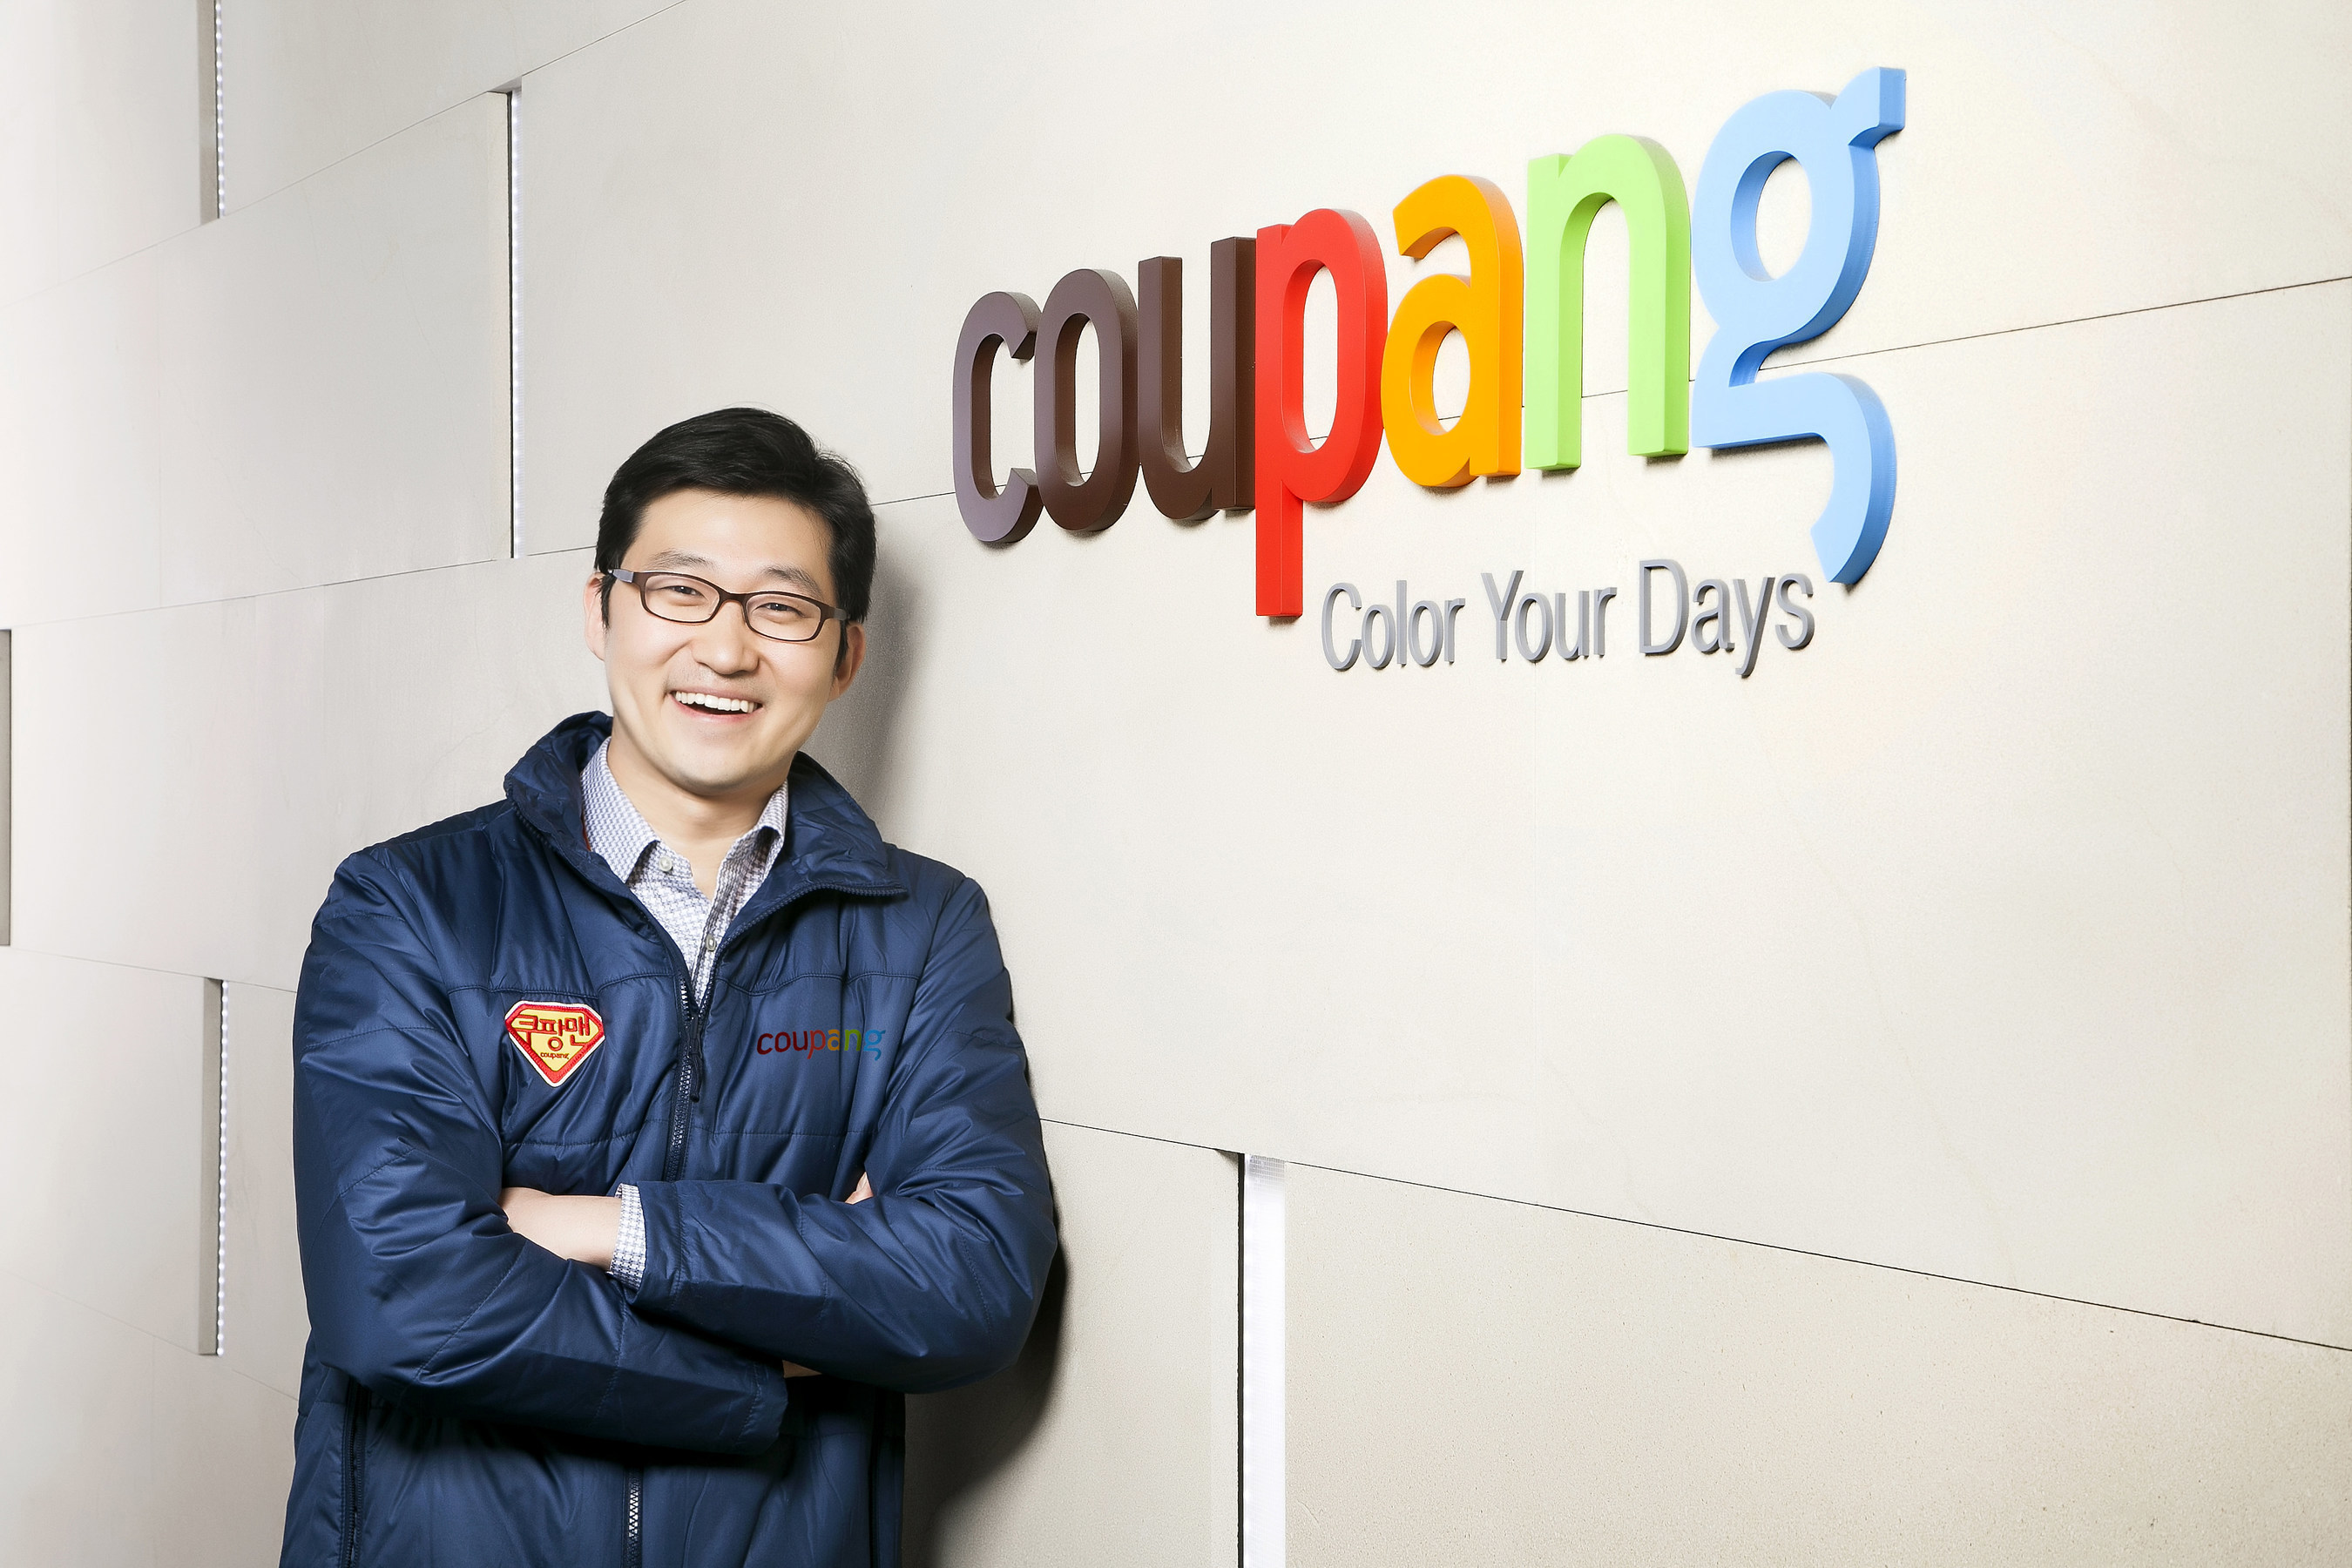 SoftBank to Invest $1 Billion in Coupang, Korea's Largest Online Retailer